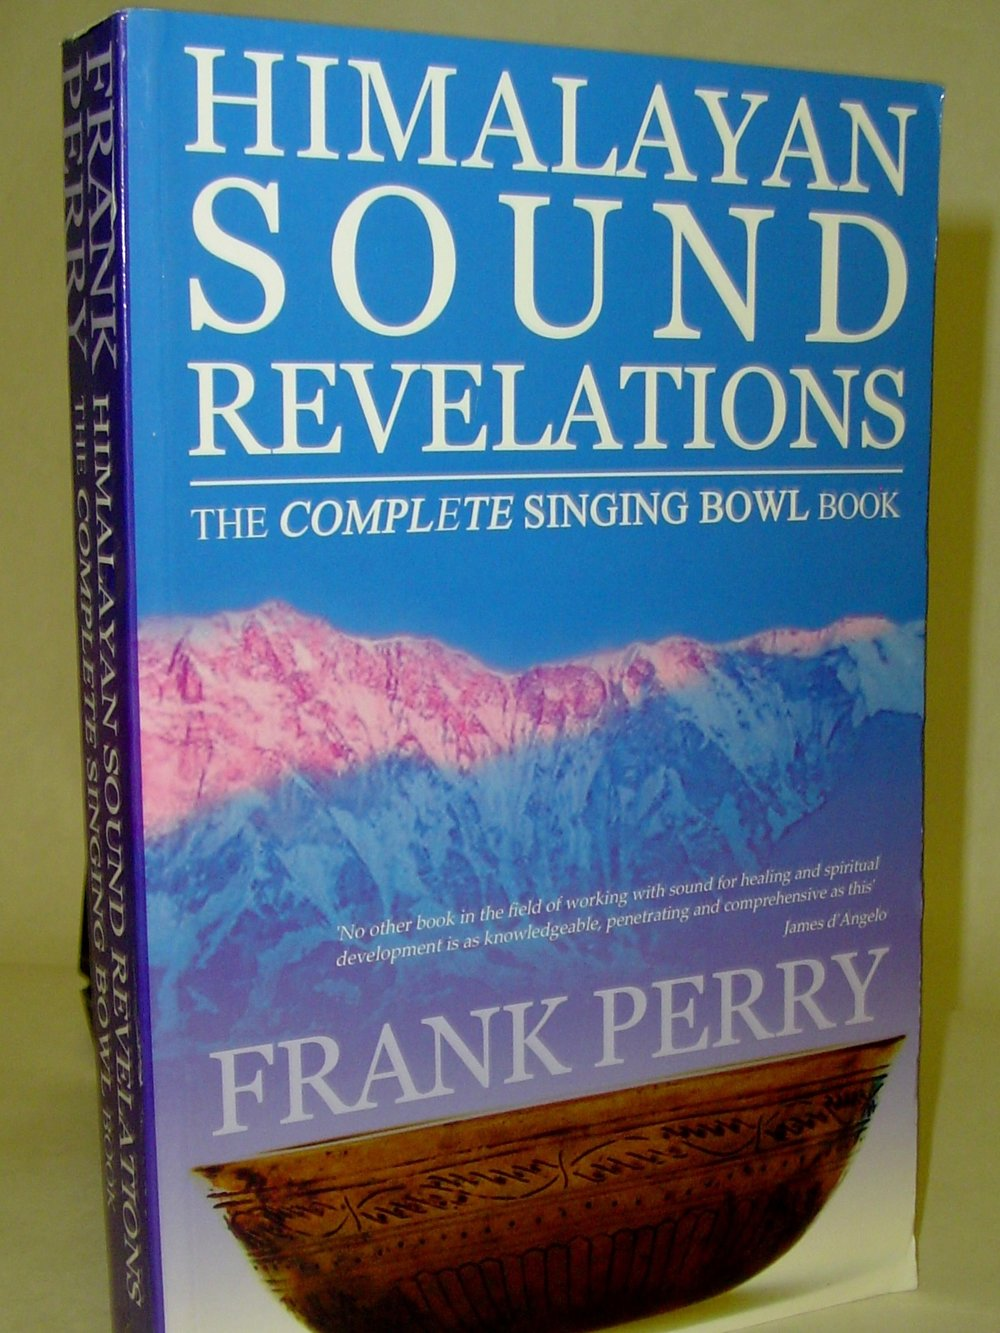 Himalayan Sound Revelations: The Complete Singing Bowl Book  By Frank Perry  $45  This book includes not just information on Tibetan bowls and how to play them, but information on Chinese bells, drilbu and ding-sha. Also included is the symbolism and astrology of the bowls and their relation to western music.   Read more on eBay